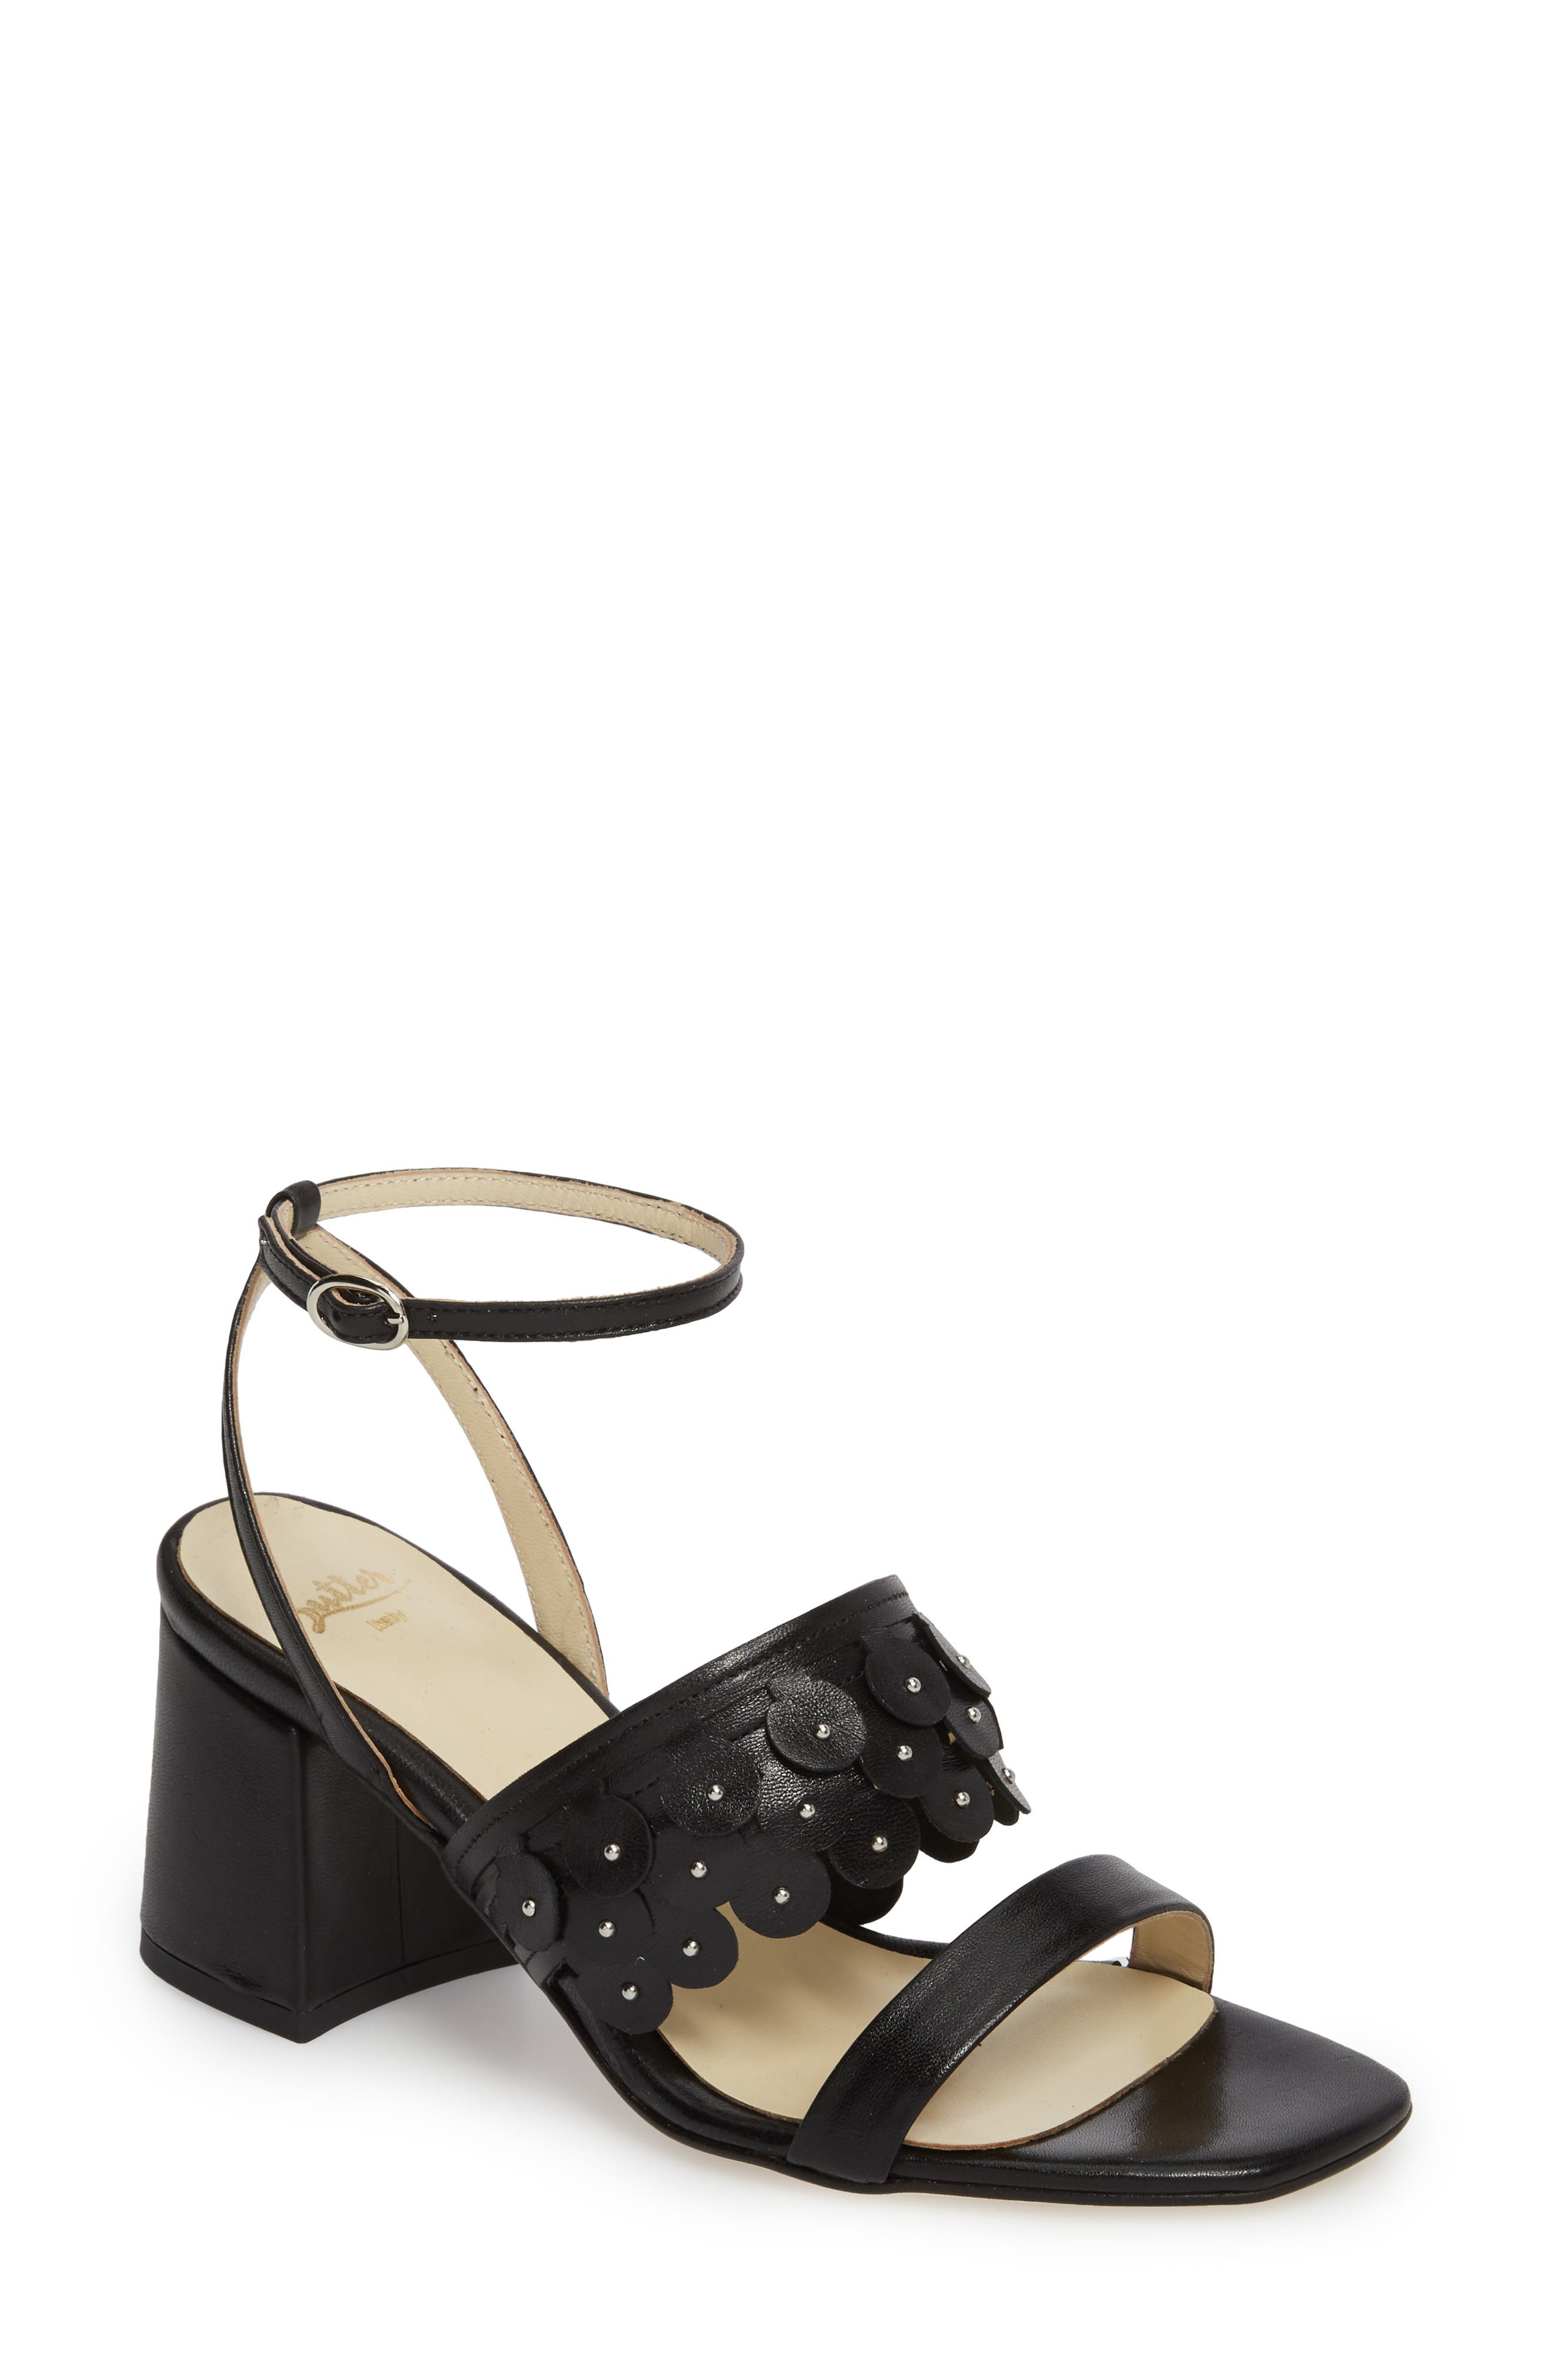 Butter Finley Studded Ankle Strap Sandal,                         Main,                         color,